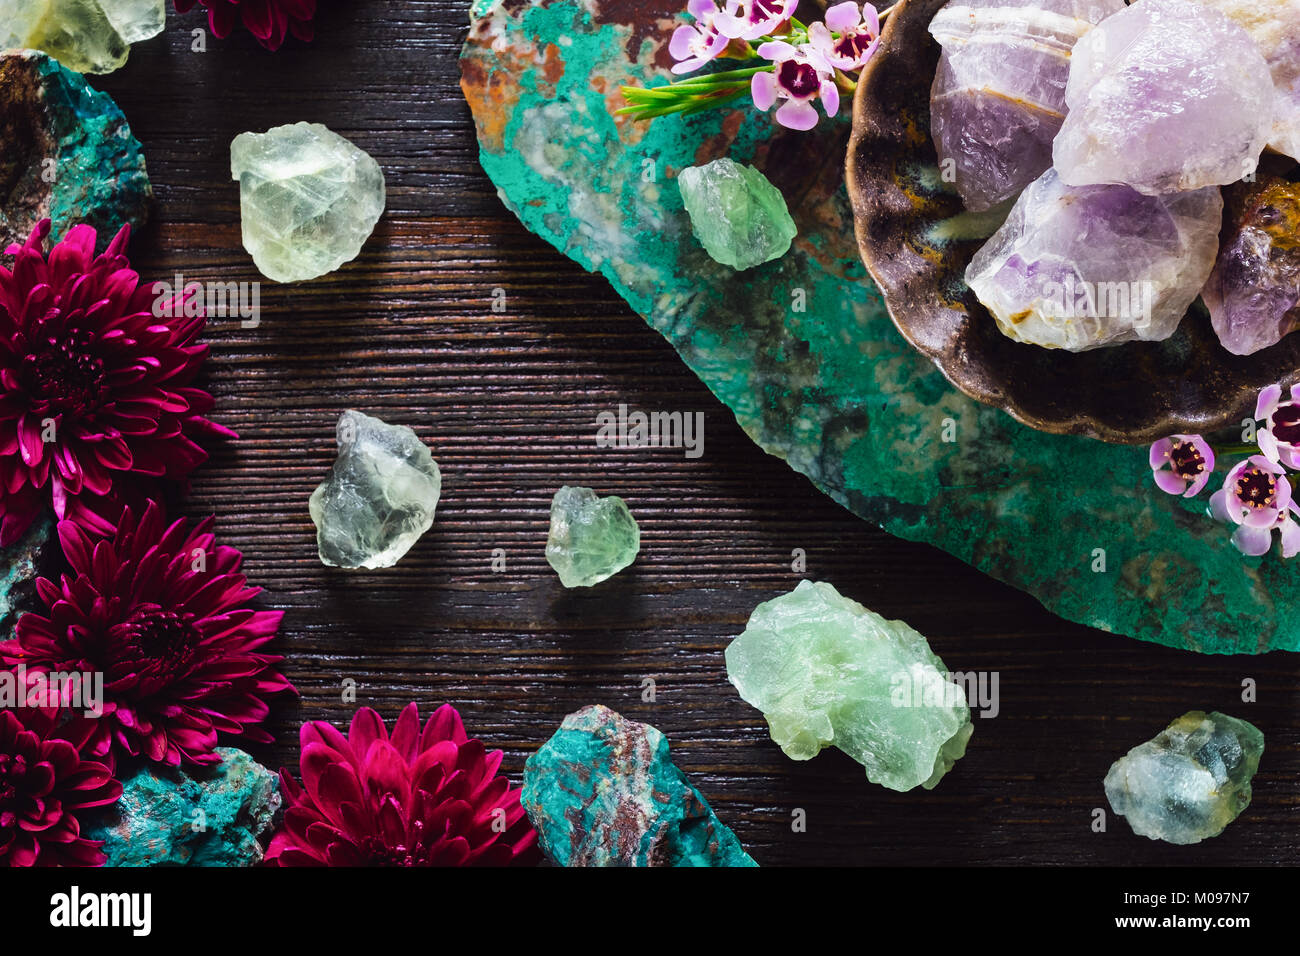 Rough Amethyst, Fluorite and Turquoise with Mixed Flowers on Dark Table - Stock Image